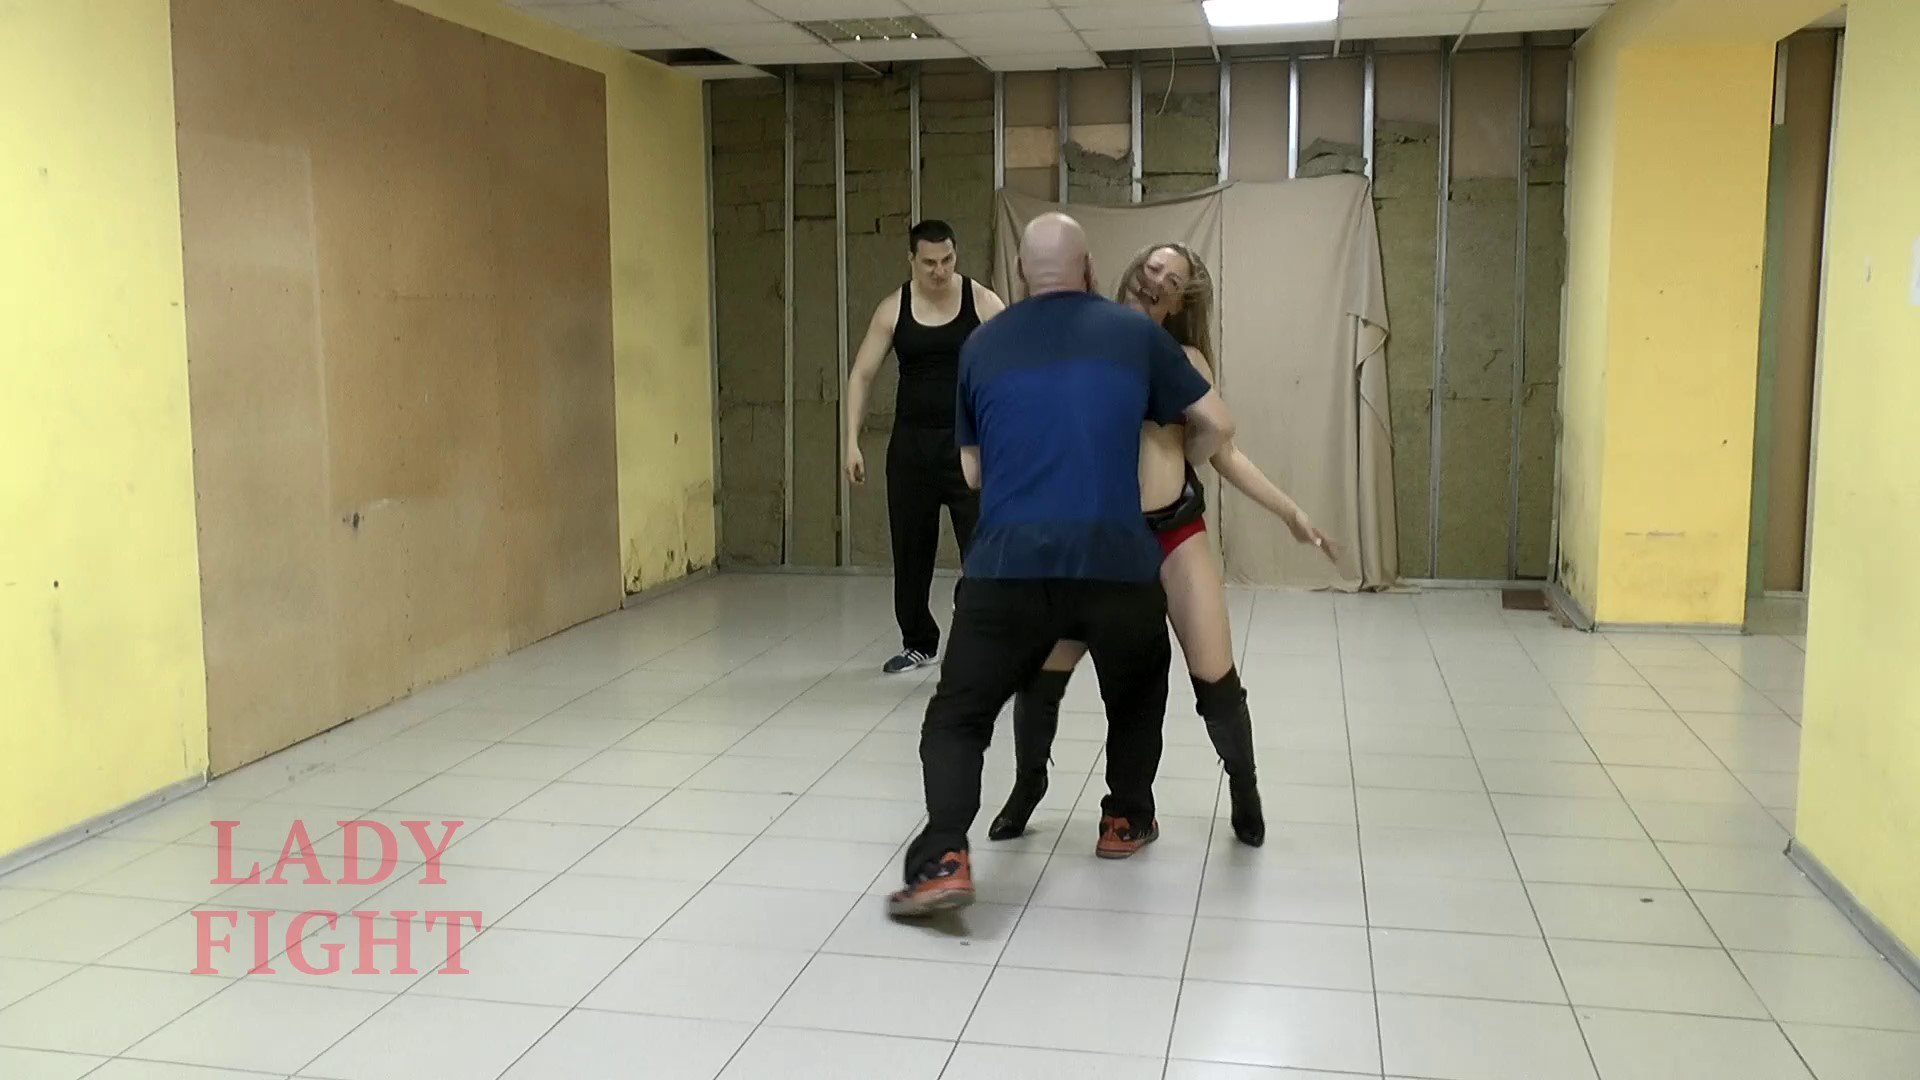 LADYFIGHT-Deadly-Wrestling-For-Lora-113